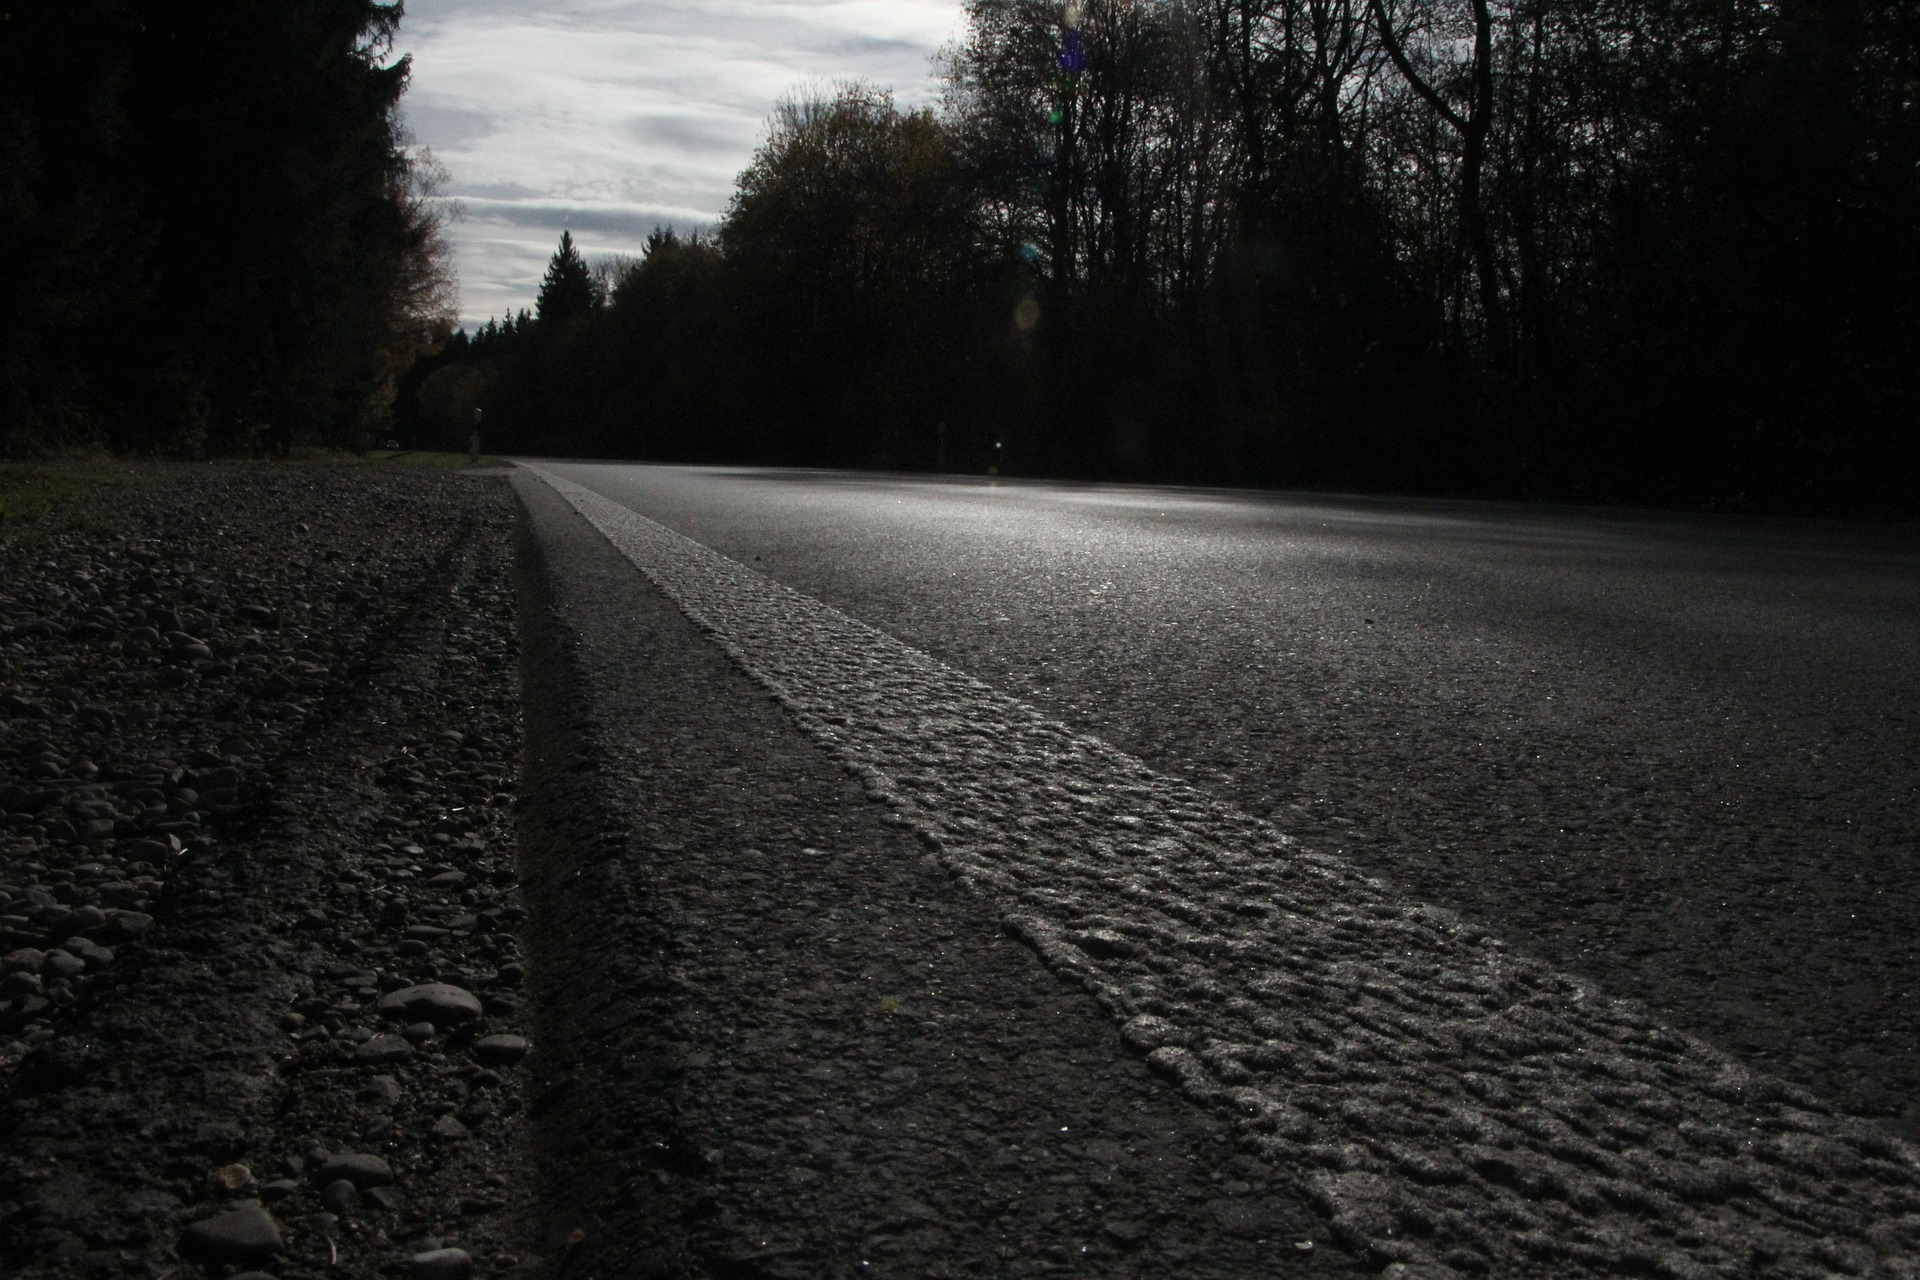 A Dark and Scary Road